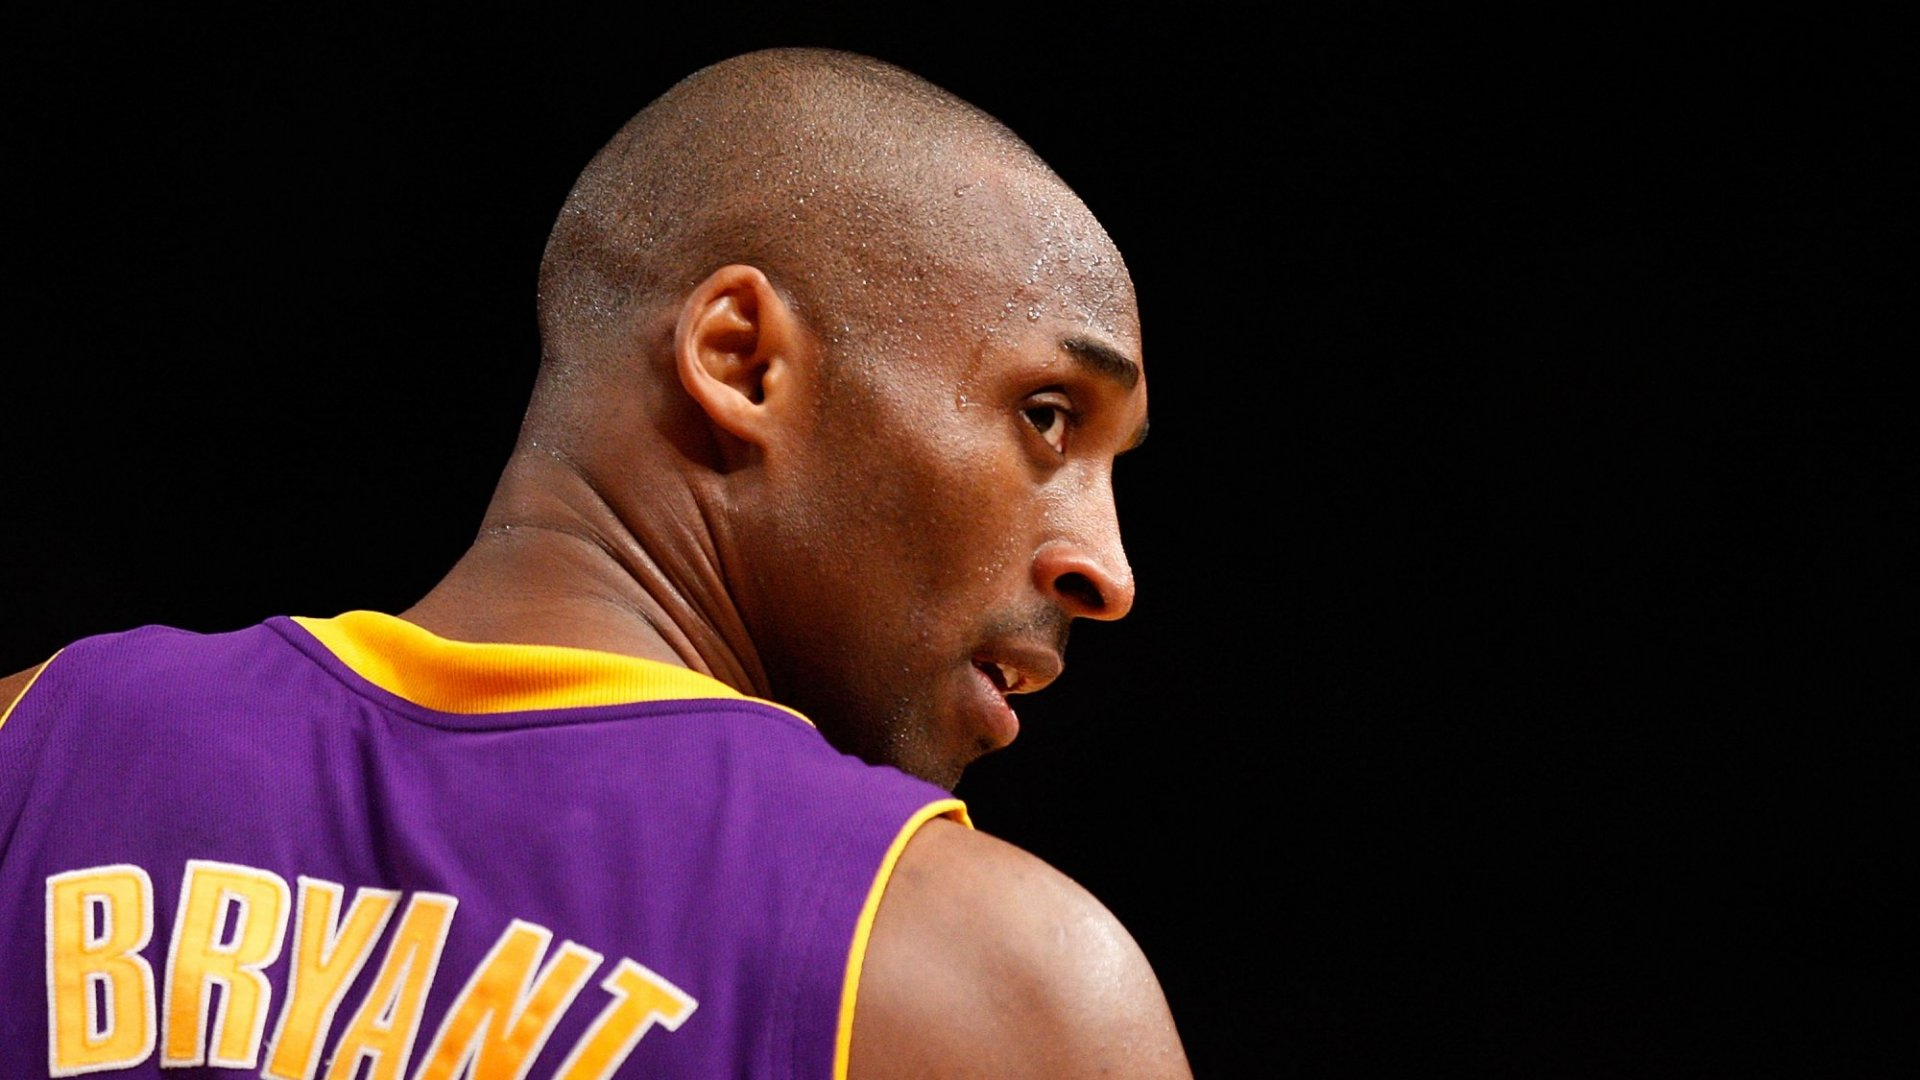 How the Late Basketball Legend Kobe Bryant Mastered His Craft